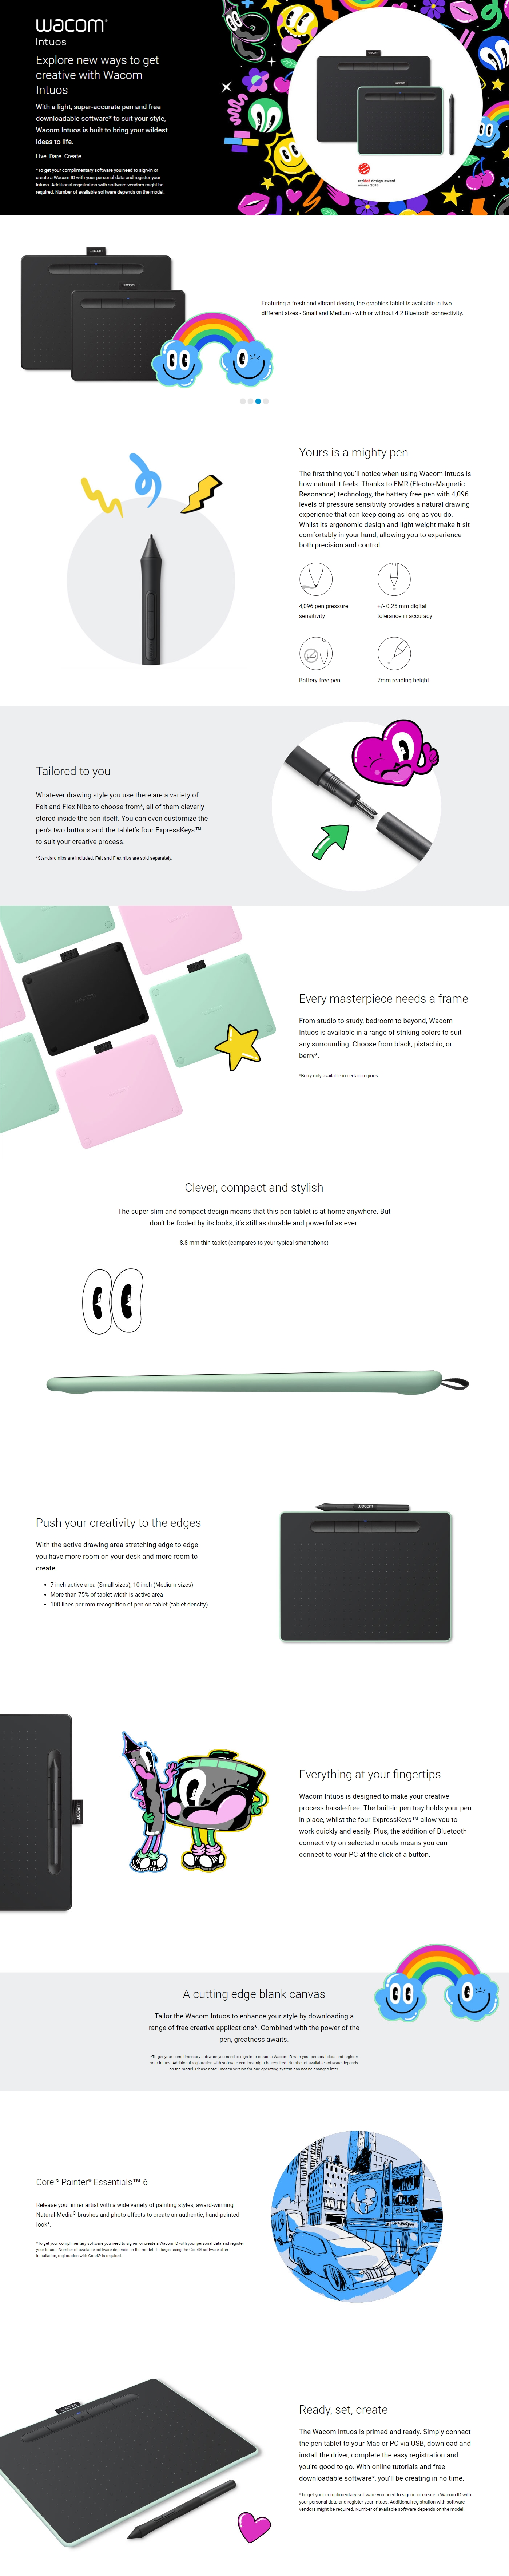 A large marketing image providing additional information about the product Wacom Intuos Medium Bluetooth Drawing Pad - Pistachio - Additional alt info not provided